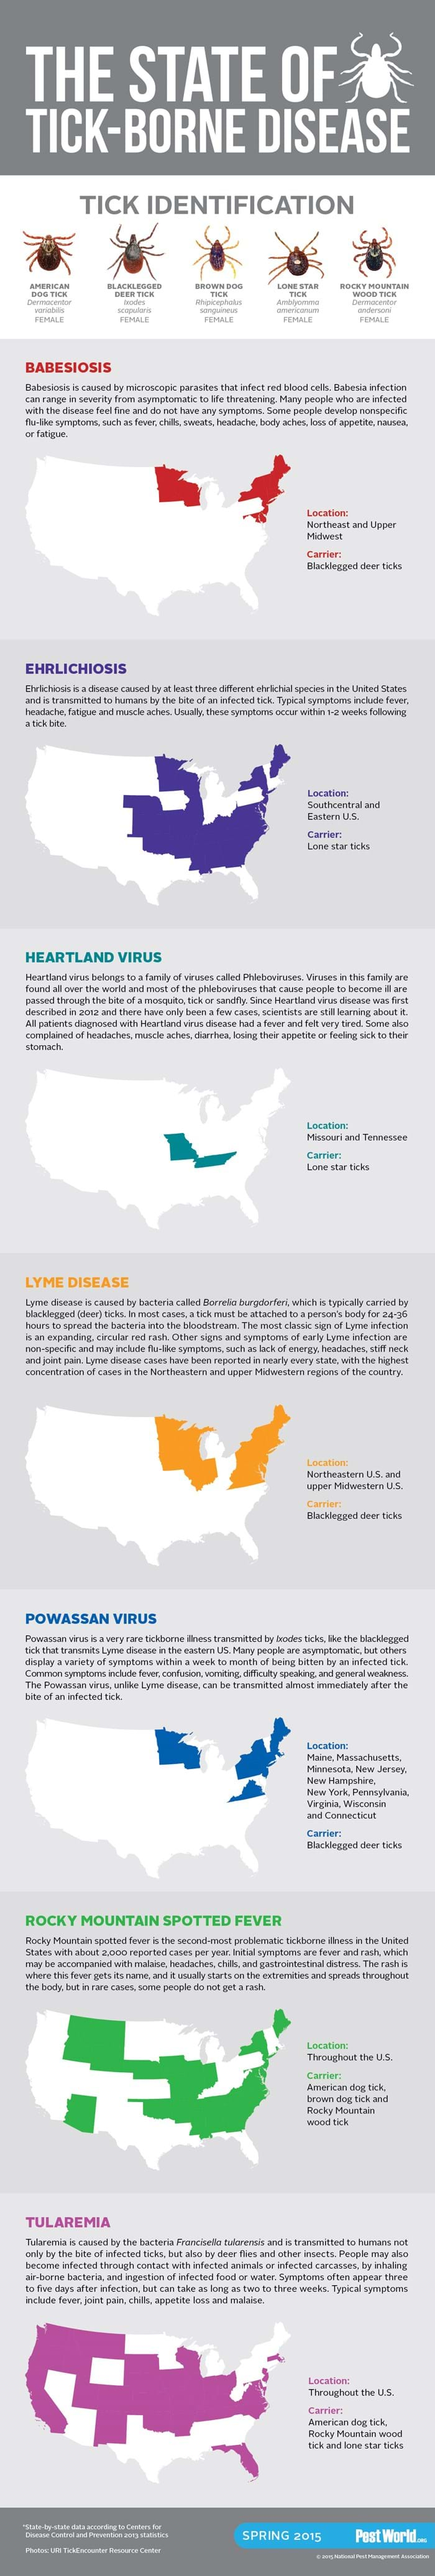 The State of Tick-Borne Diseases Infographic